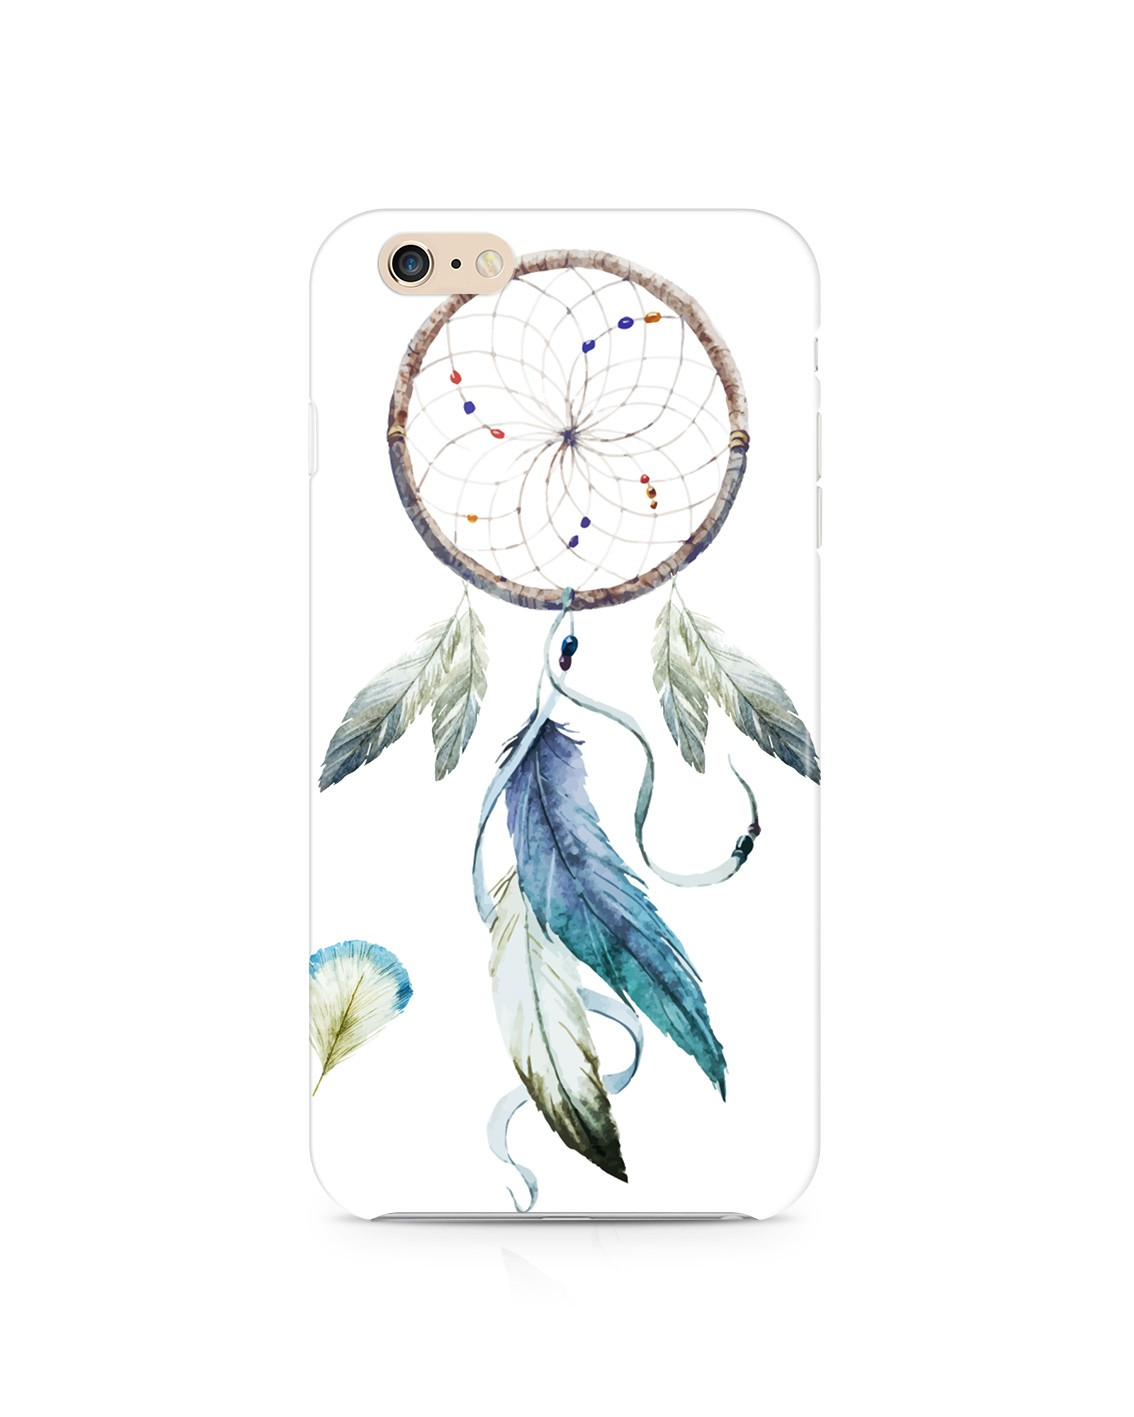 Etui iPhone Dream catcher - 32817